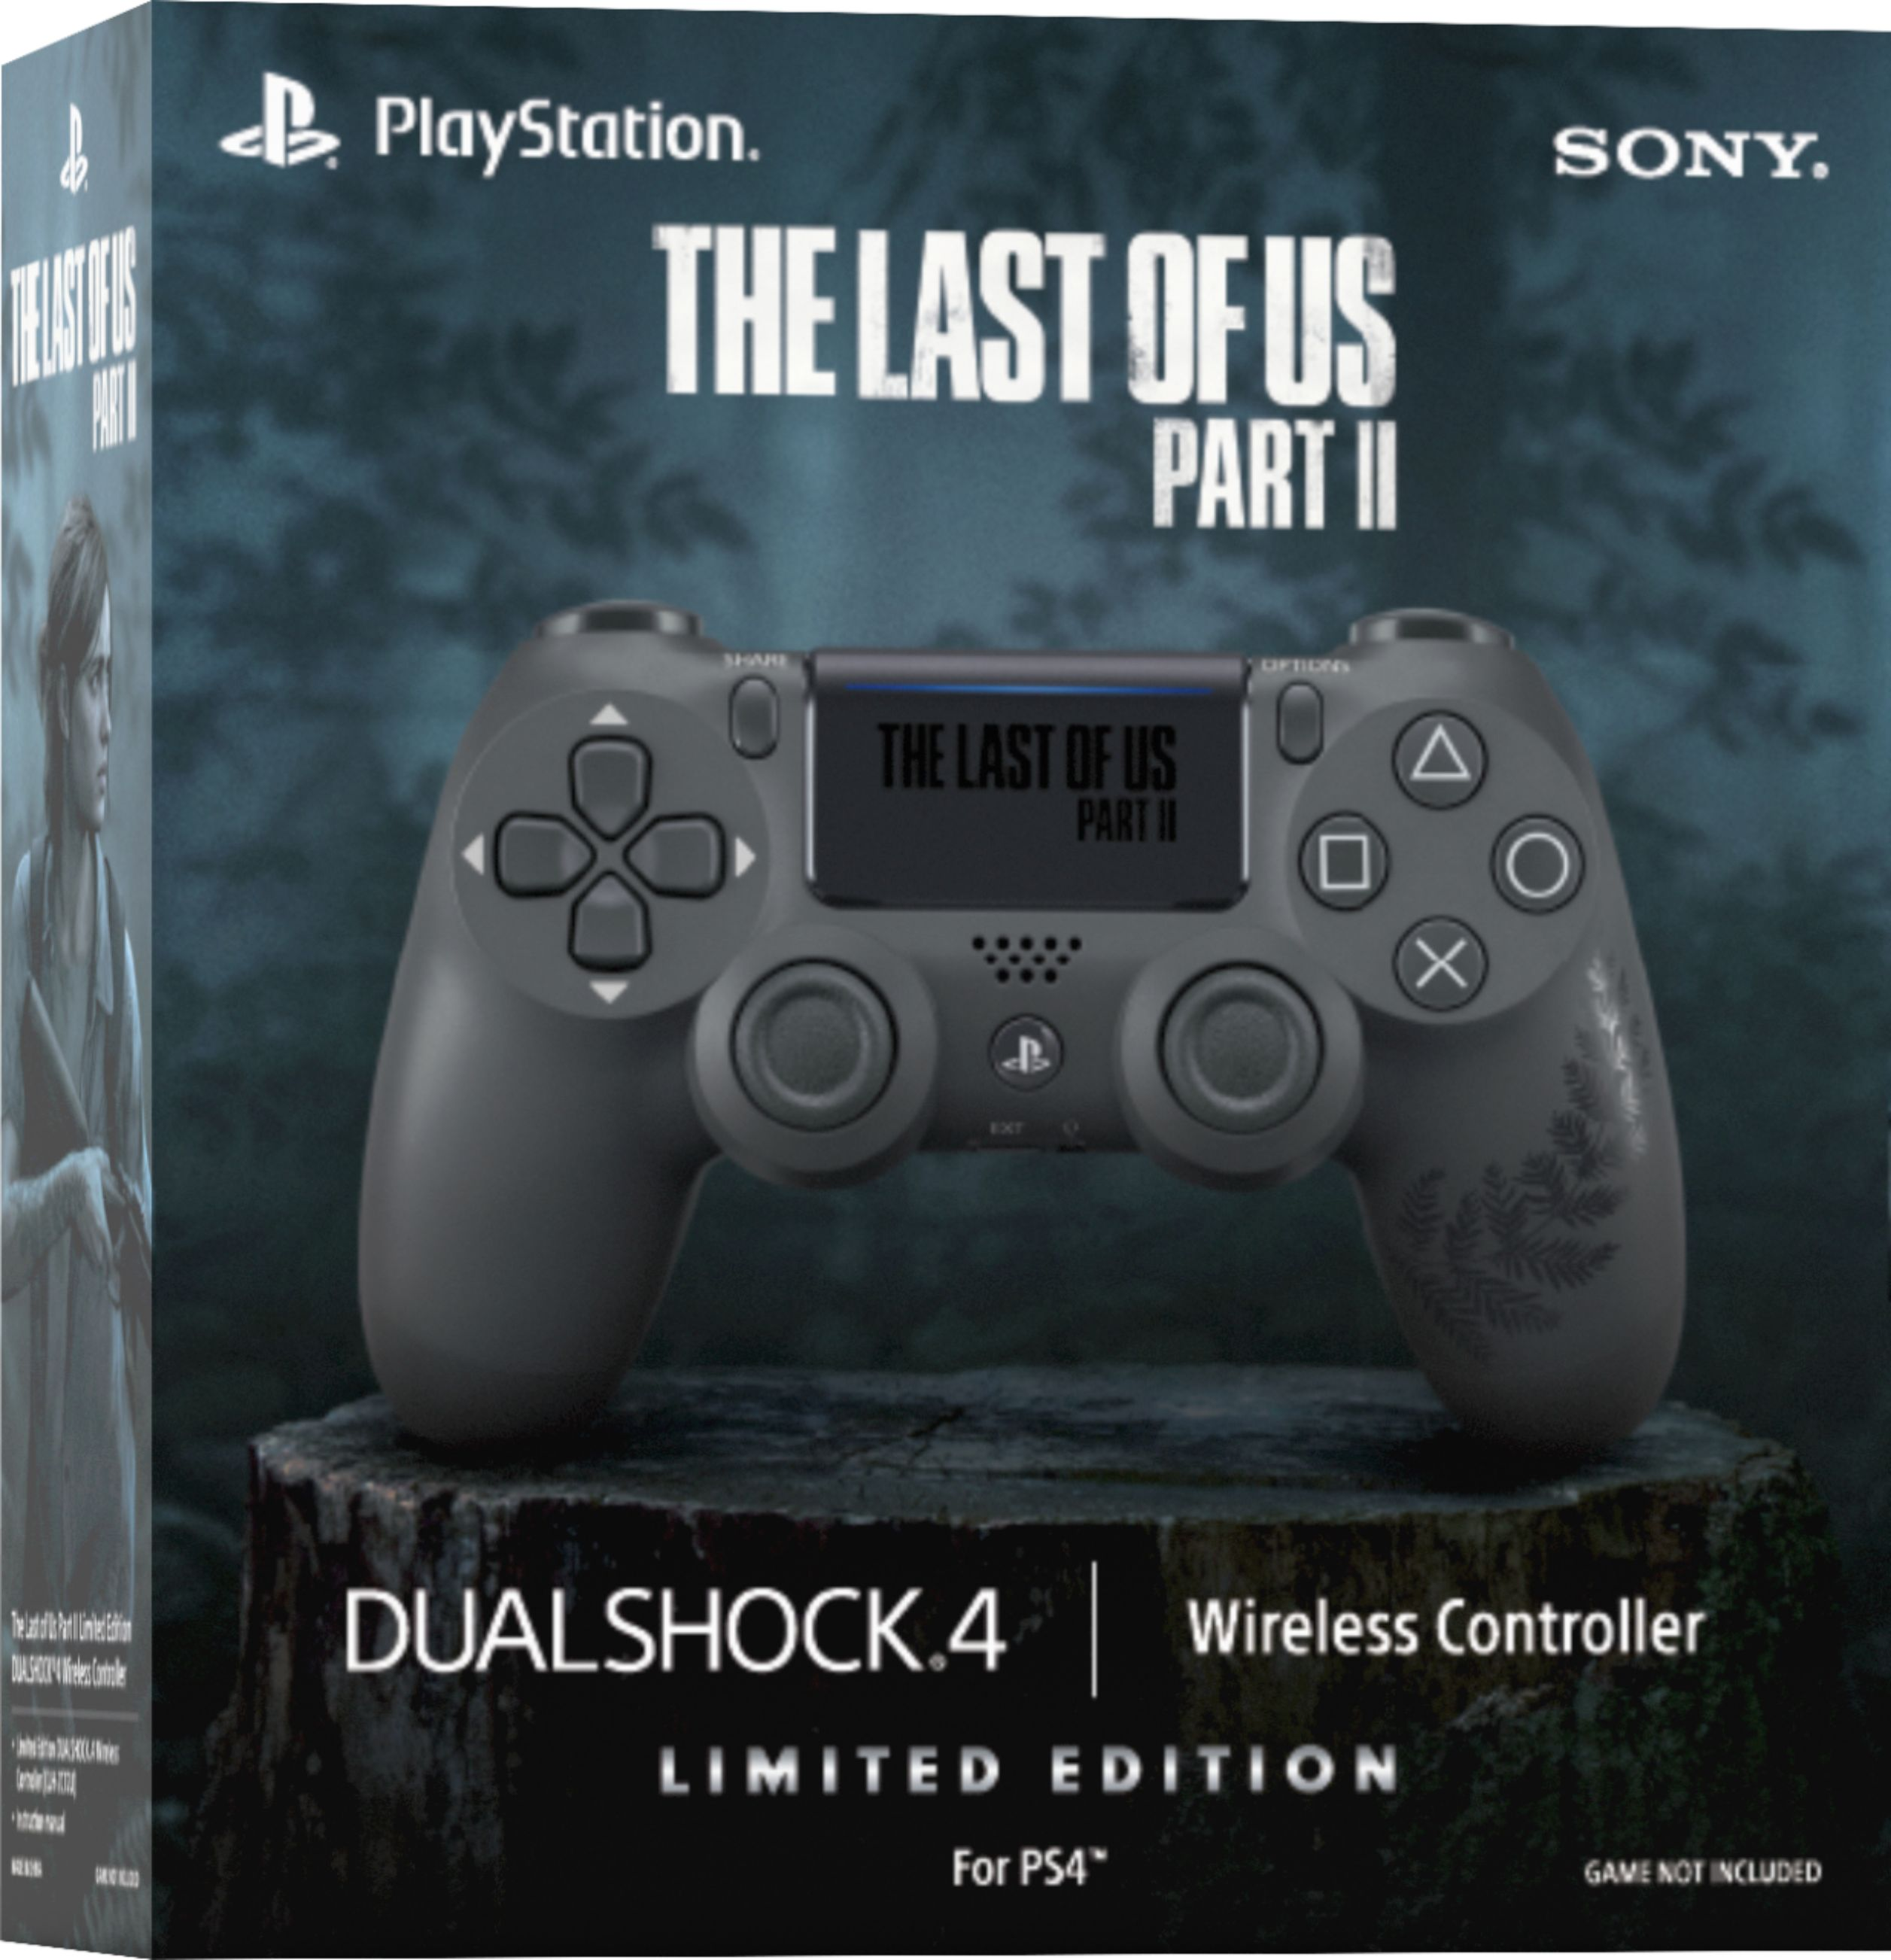 Sony Playstation 4 Dualshock 4 kontroller The Last of Us Part II Limited Edition